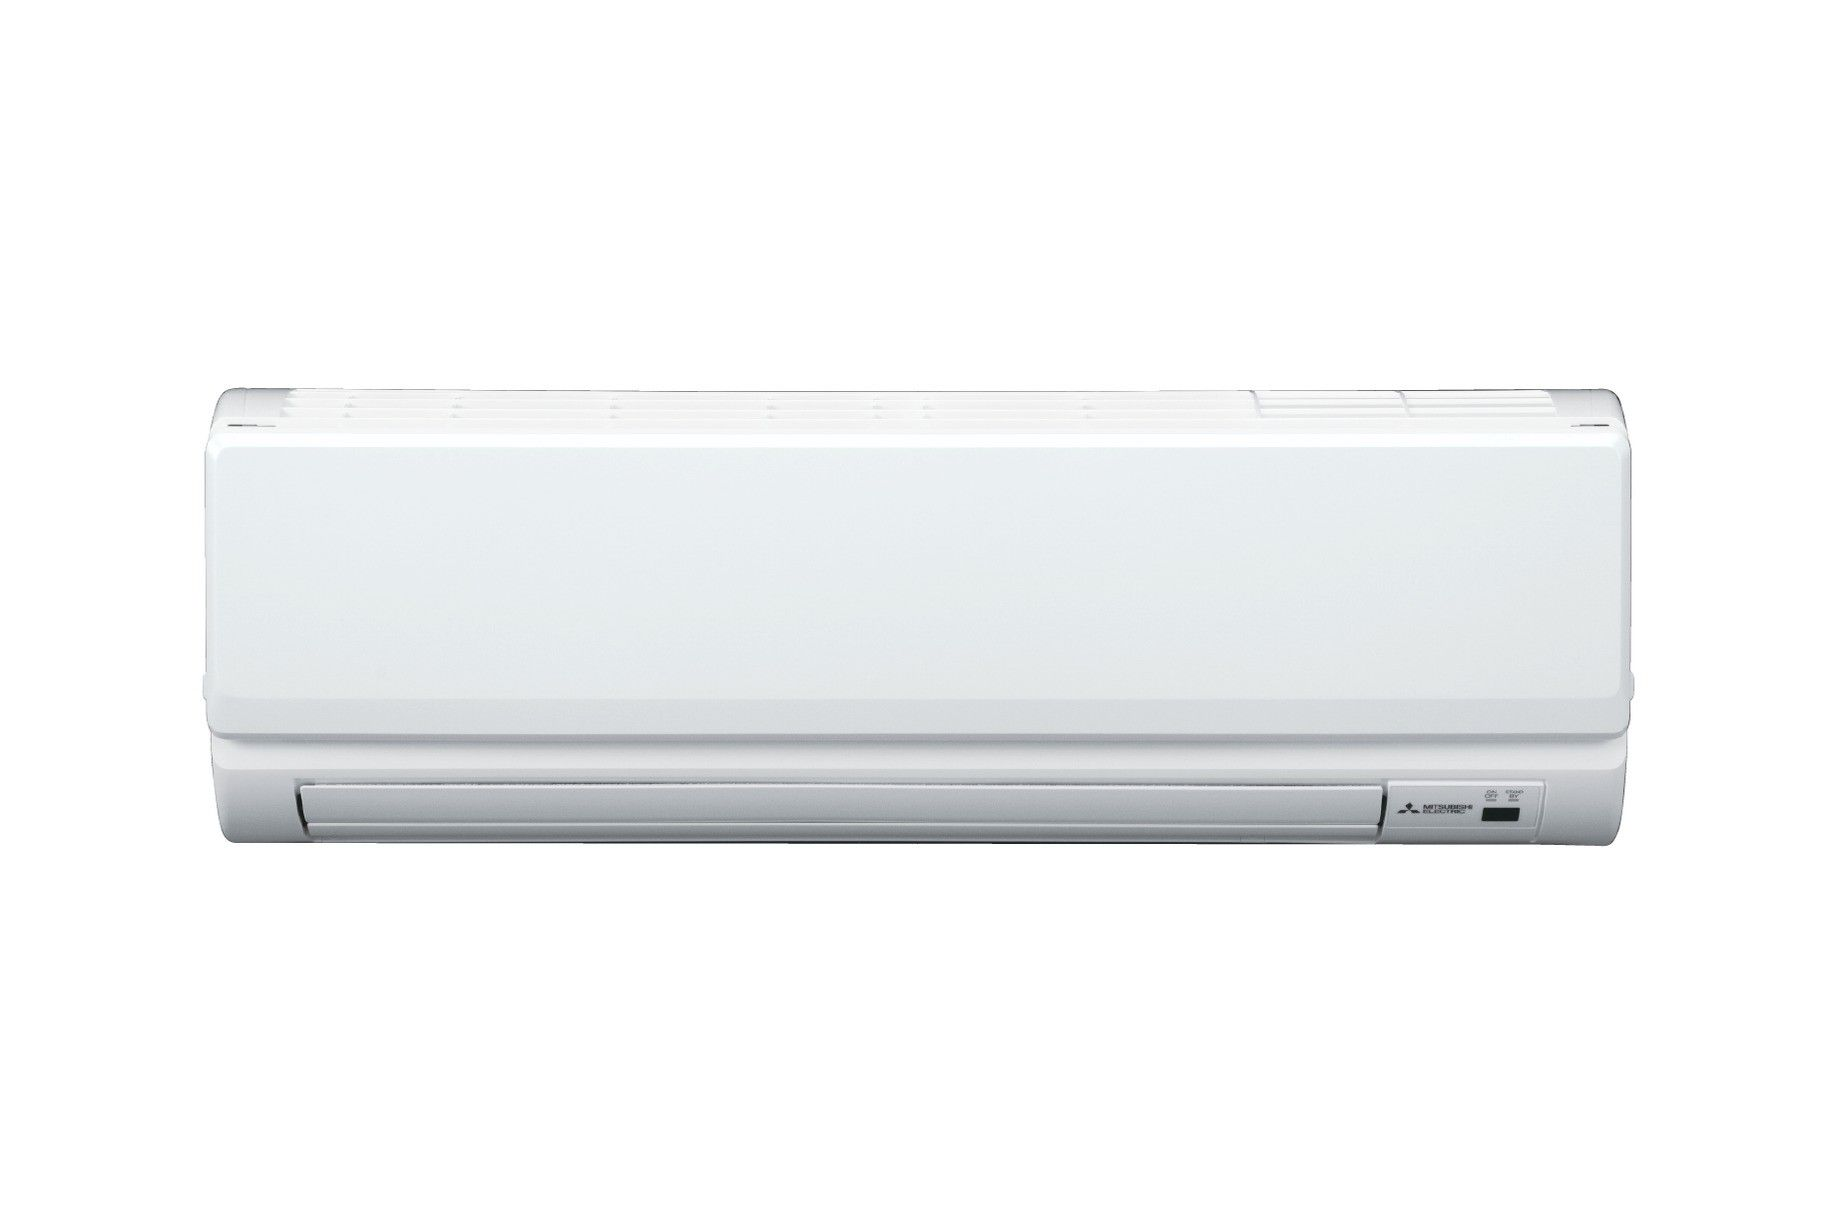 12K BTU Mitsubishi PKAA Wall Mounted Indoor Unit